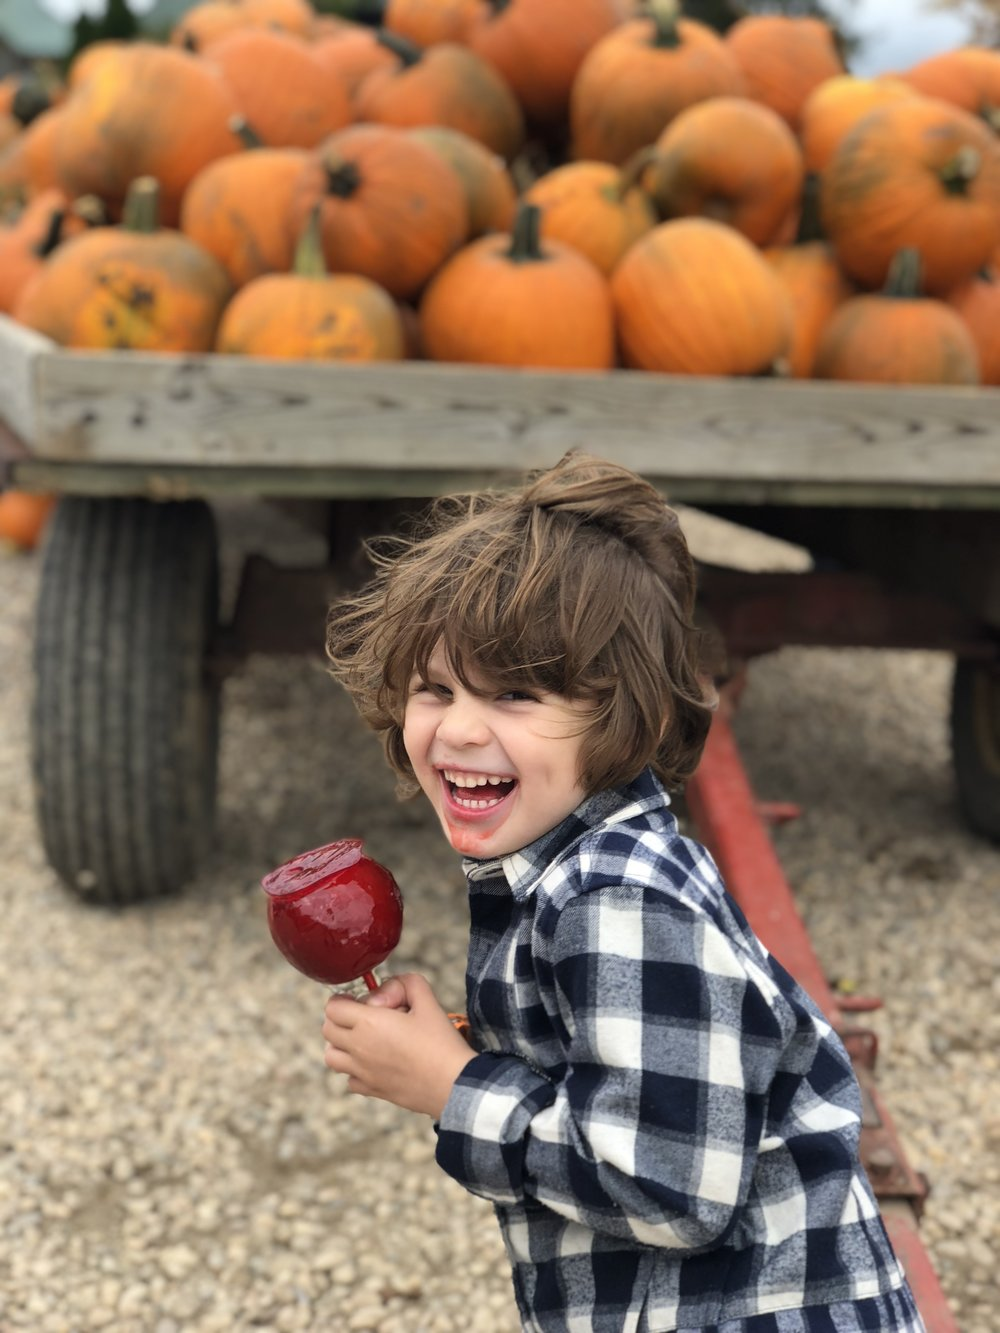 Eating a candy apple at the Pumpkin Patch picking out pumpkins to carve in to jack-o-lanters